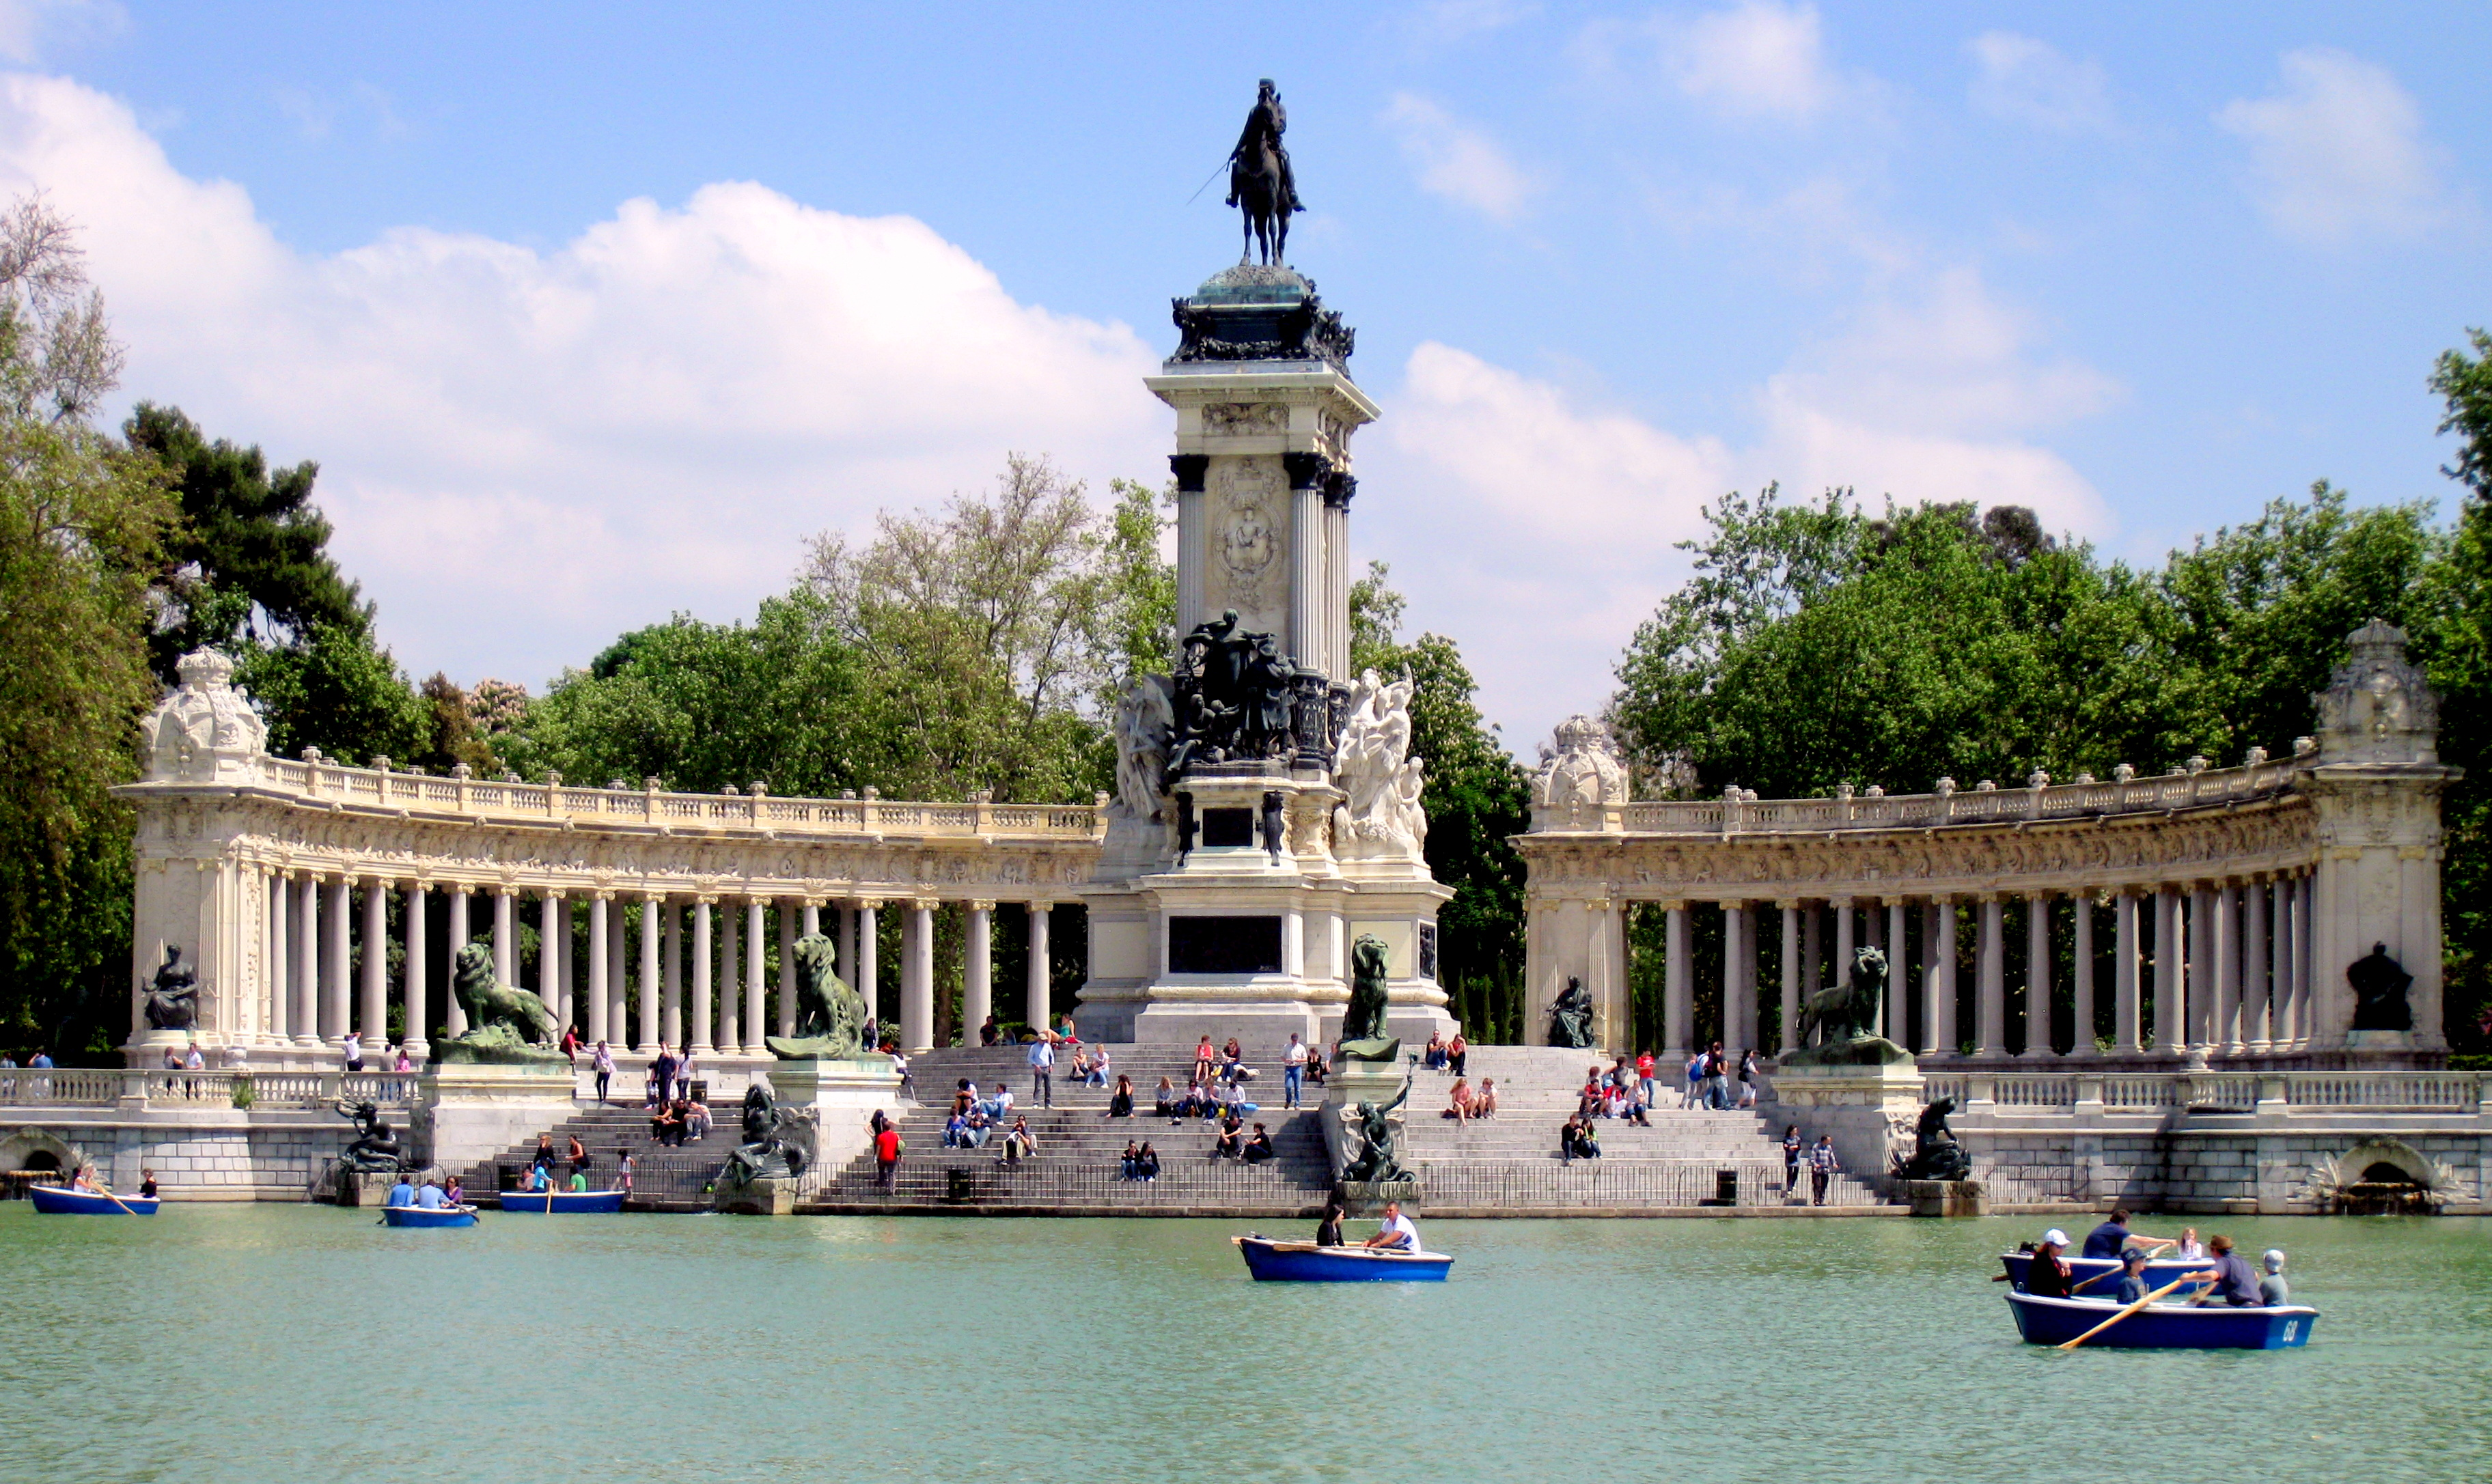 Buen retiro park urban park in madrid thousand wonders for Parques de madrid espana